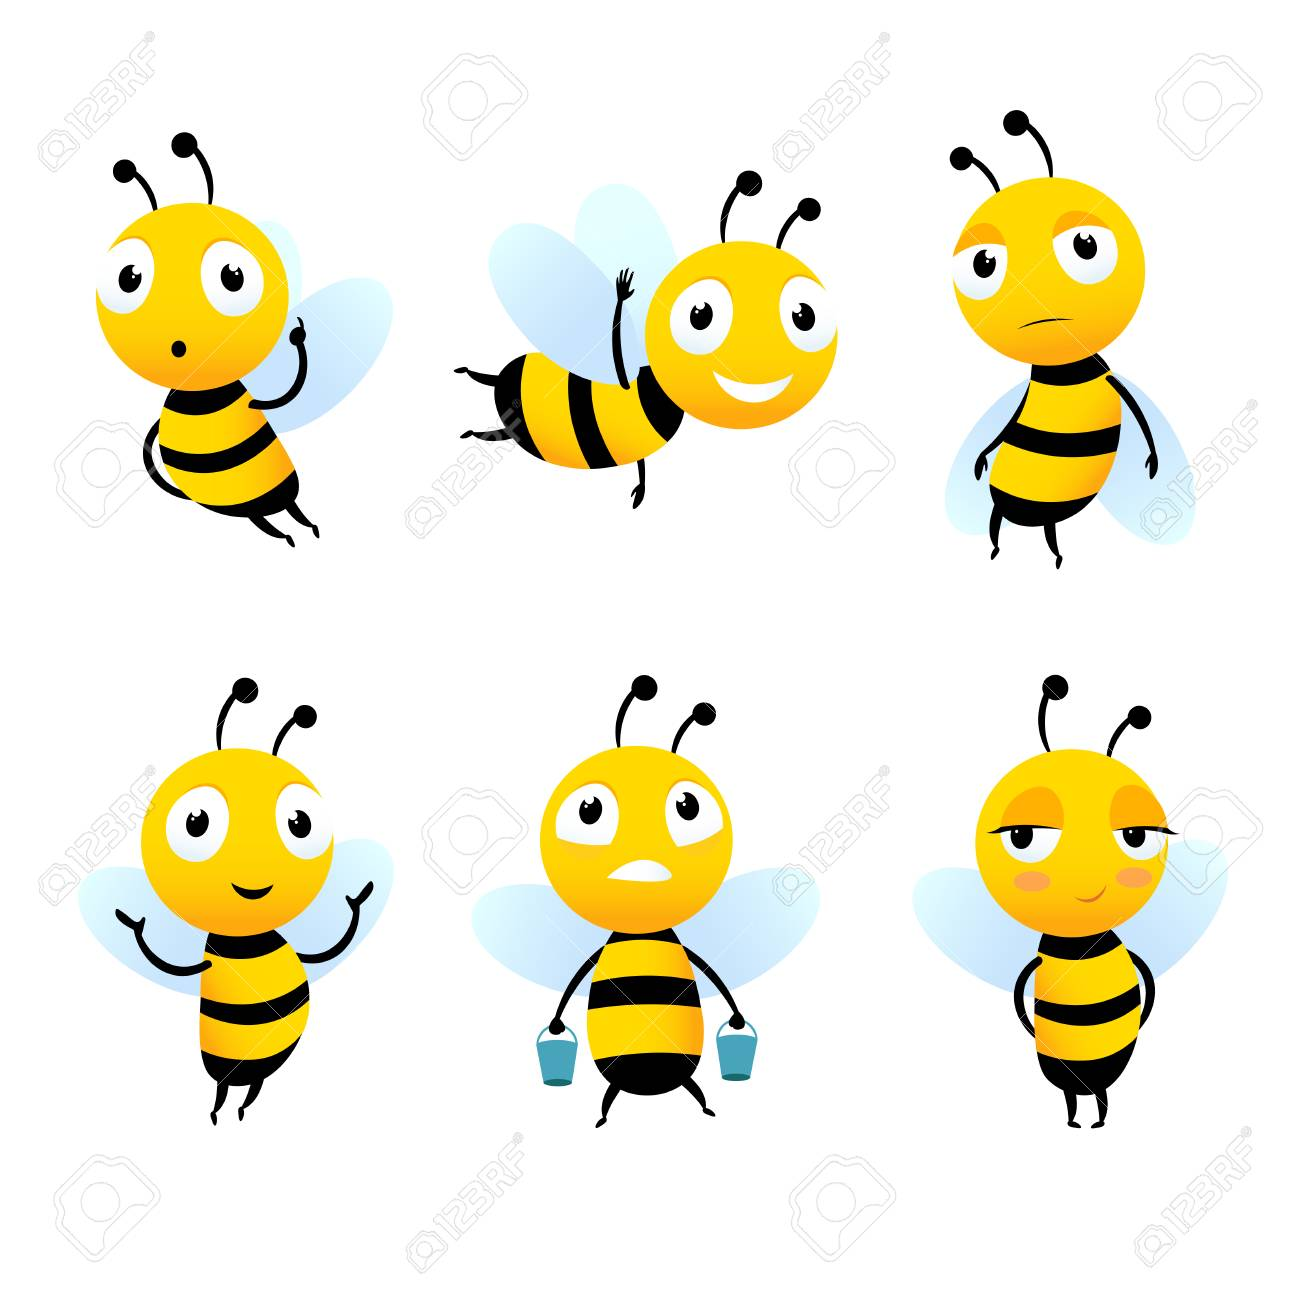 Various Cartoon Characters Of Bees With Honey Bee Cartoon Insect Royalty Free Cliparts Vectors And Stock Illustration Image 112002766